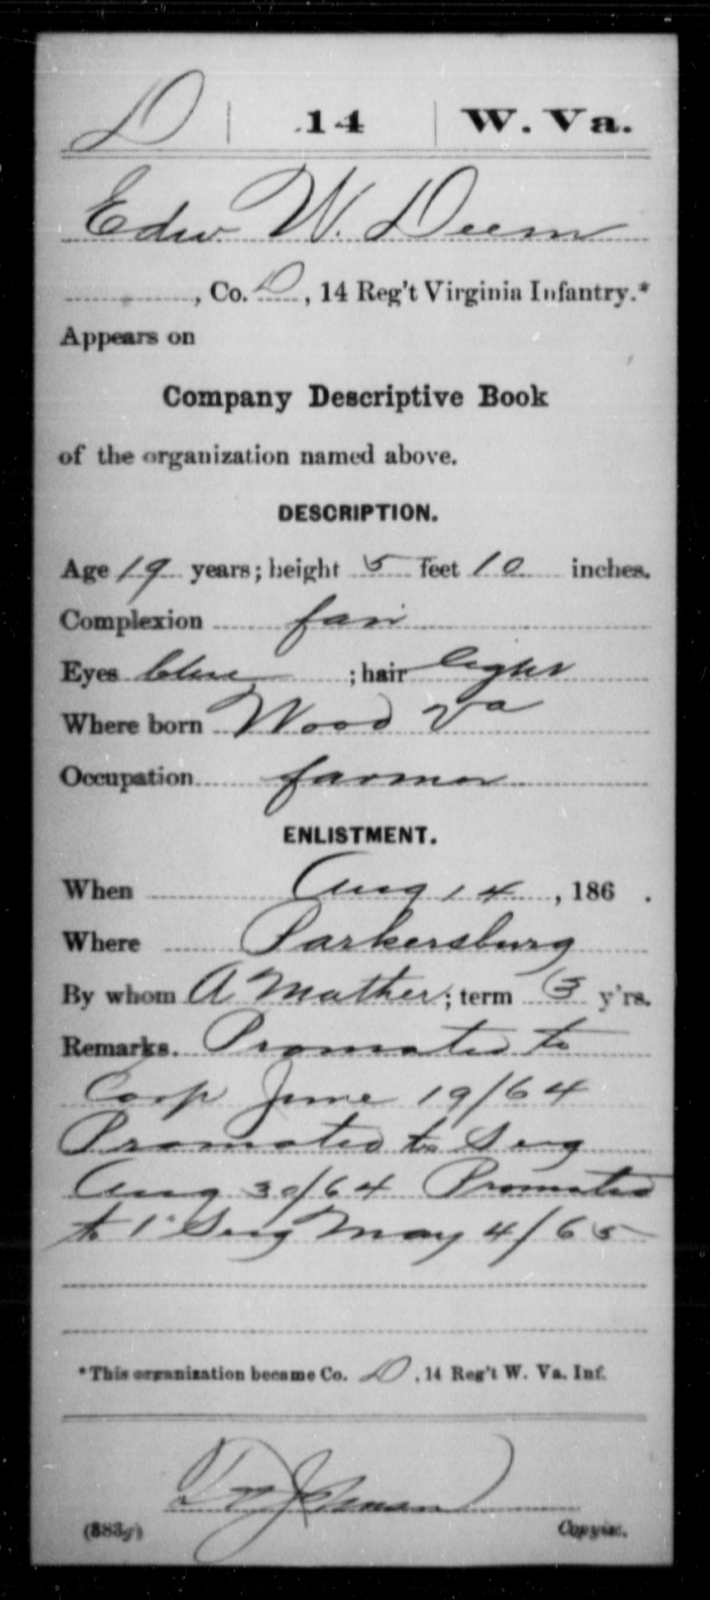 Deem, Edw W - Age 19, Year: 1864 - Miscellaneous Card Abstracts of Records - West Virginia